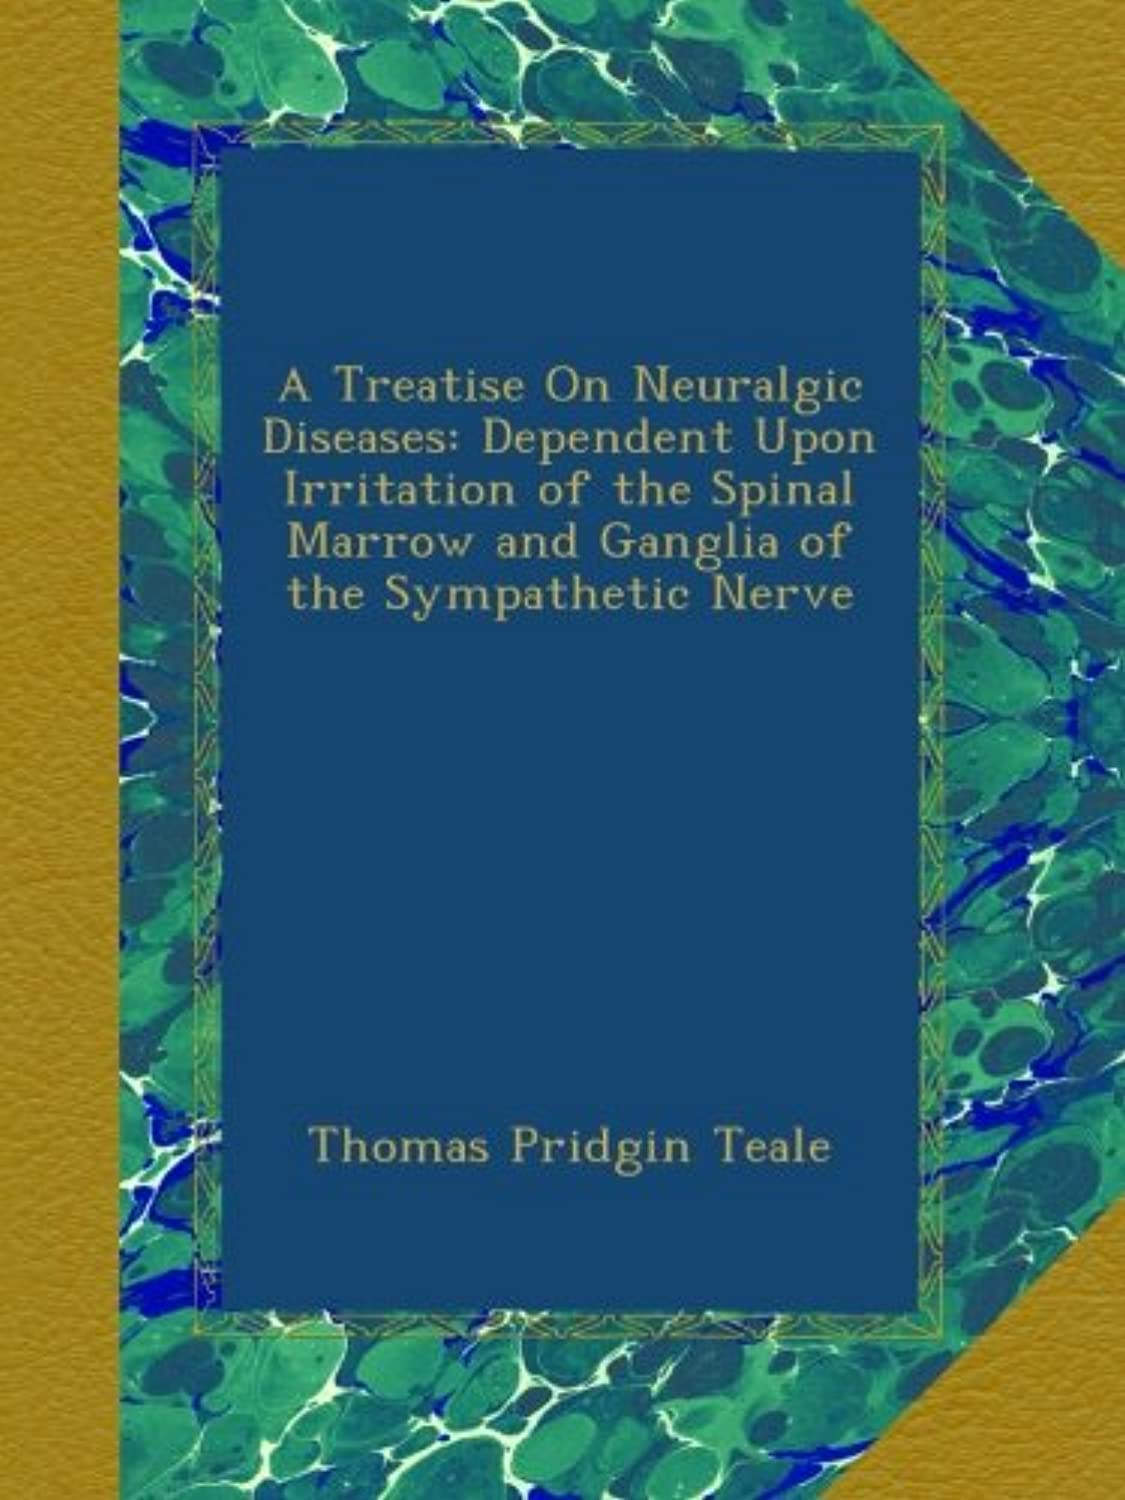 A Treatise On Neuralgic Diseases: Dependent Upon Irritation of the Spinal Marrow and Ganglia of the Sympathetic Nerve